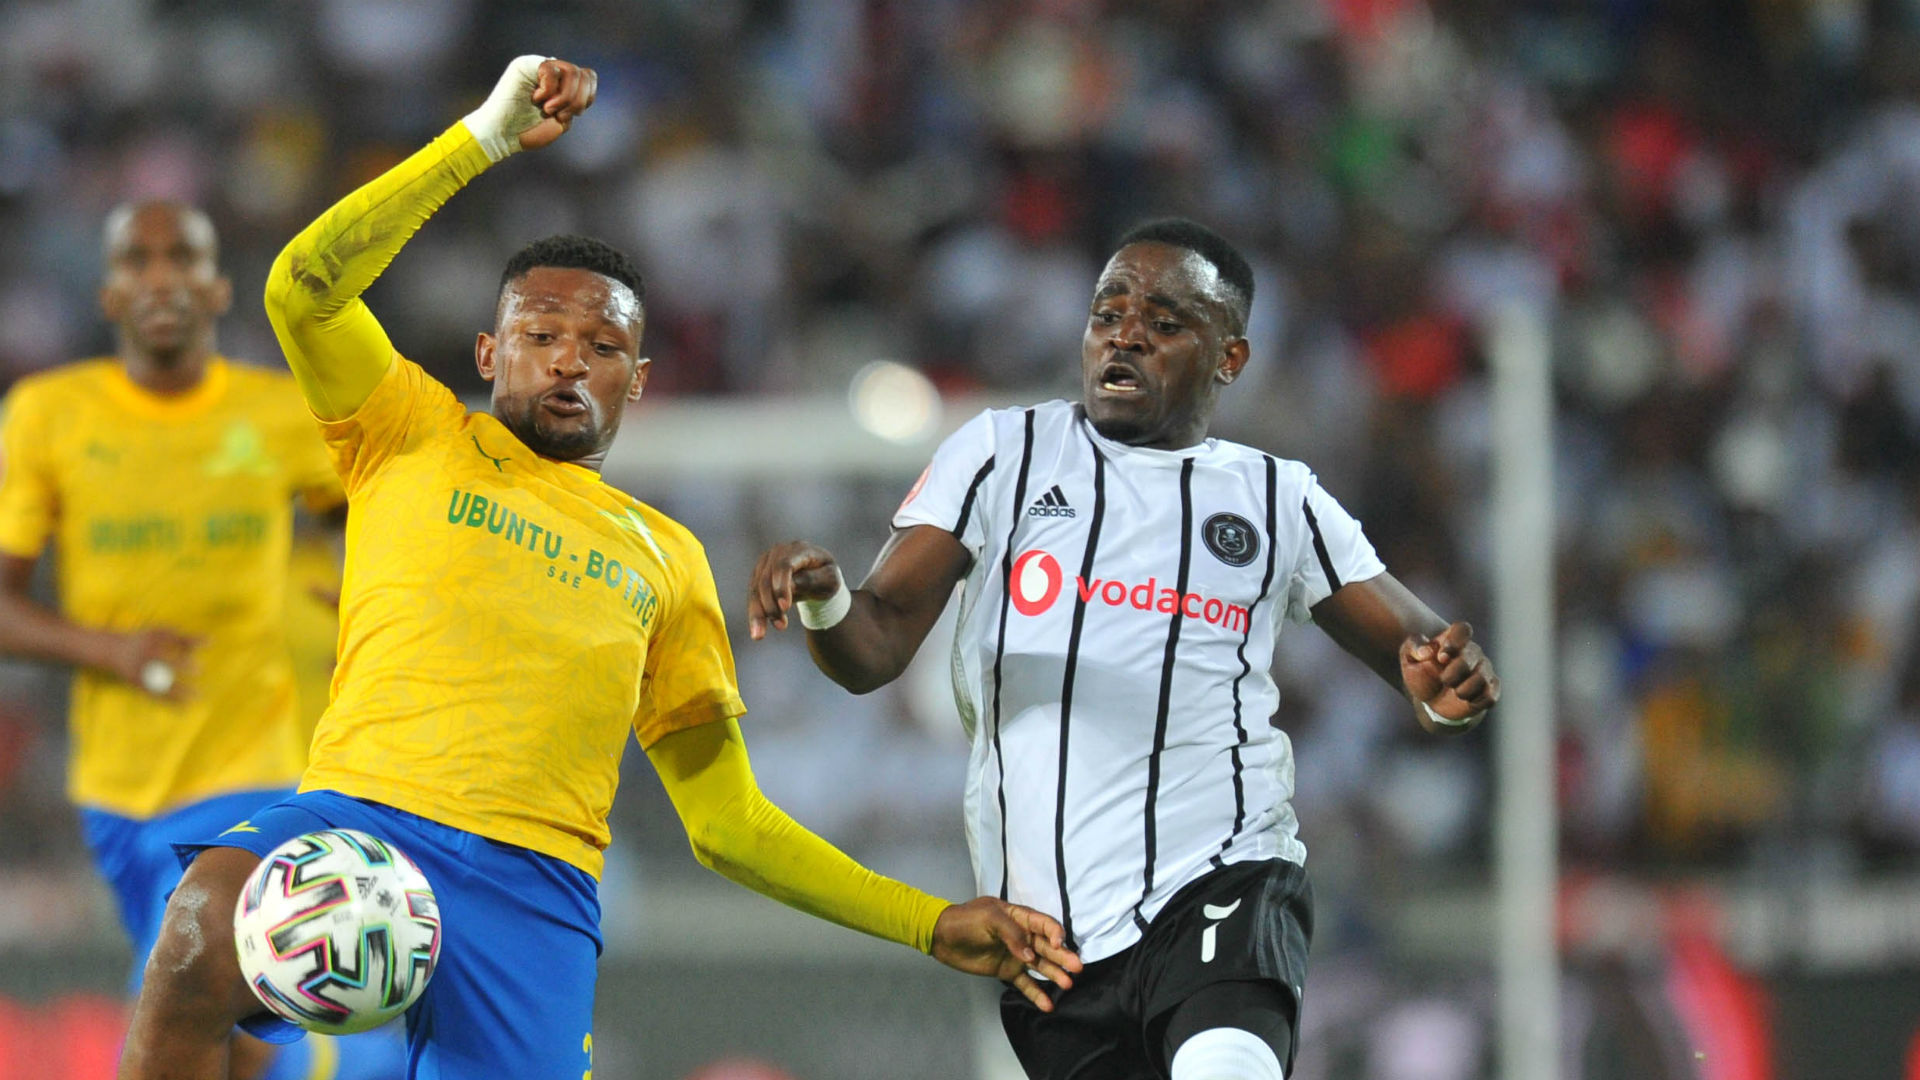 Orlando Pirates 1-0 Mamelodi Sundowns - Player Ratings: Mhango the top performer